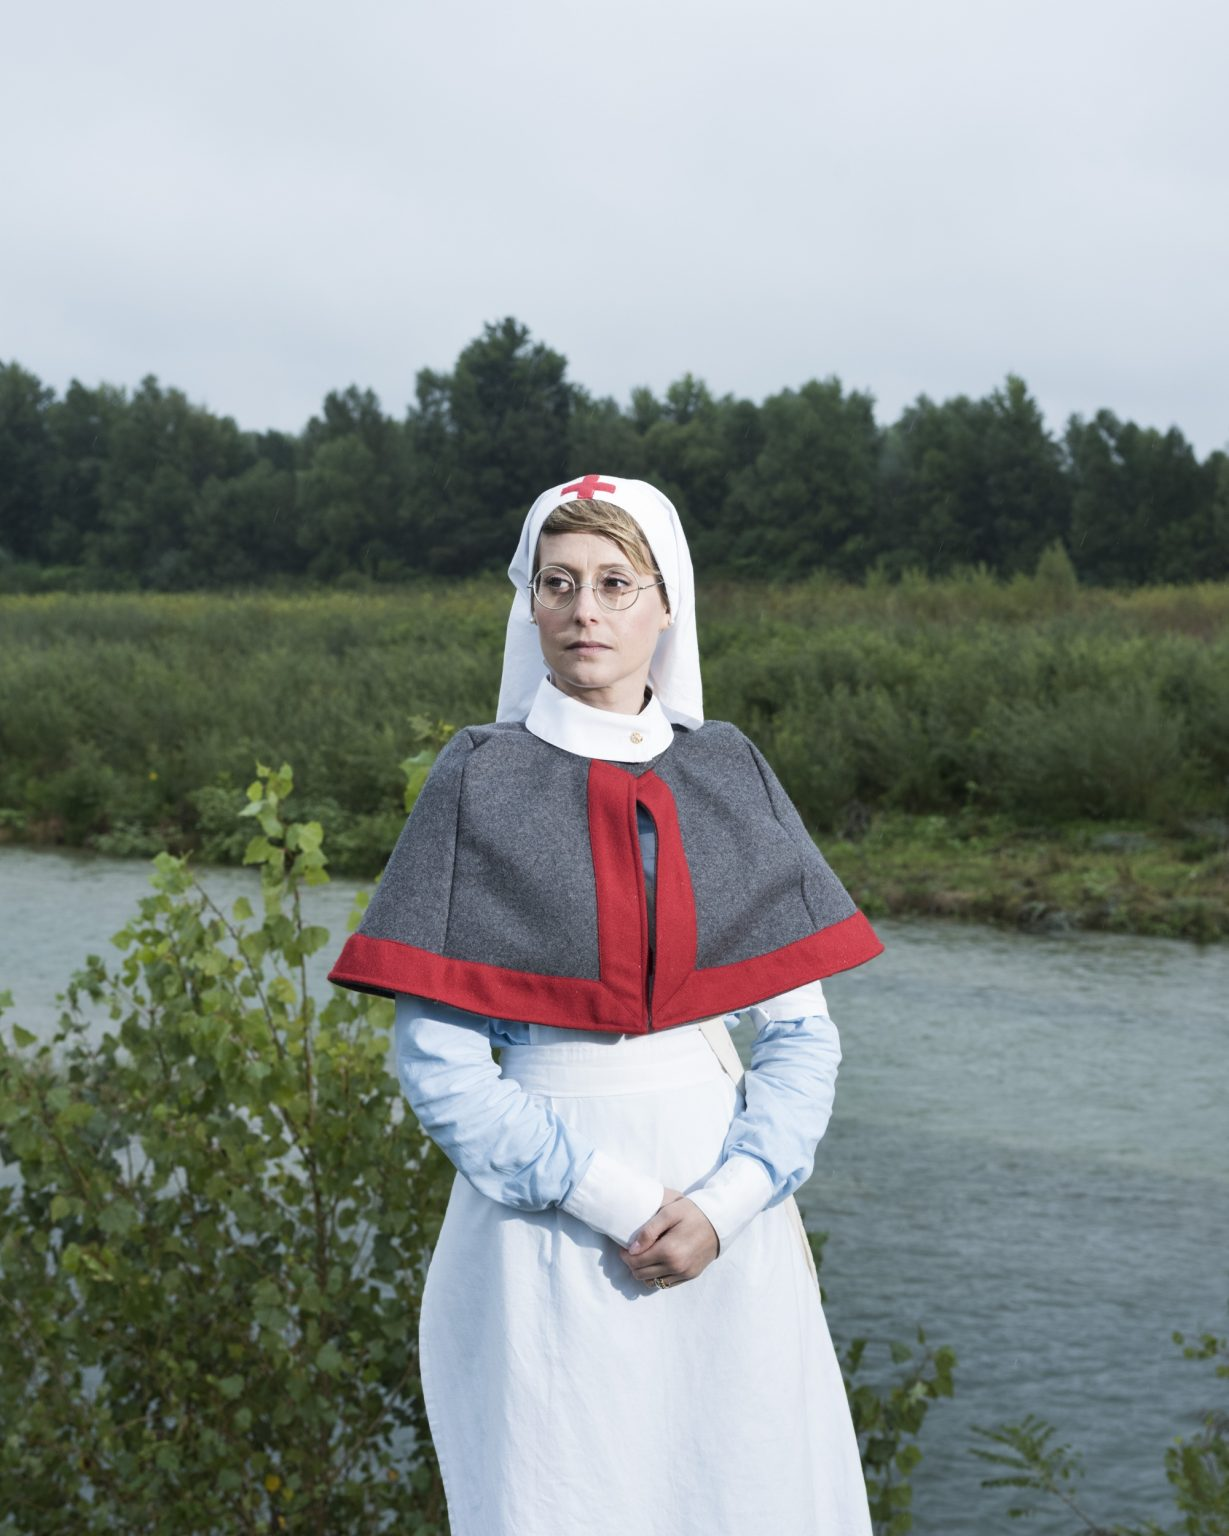 Breda di Piave (Treviso), Italy. First World War reenactment on the banks of the Piave river. Nurse reenactor.